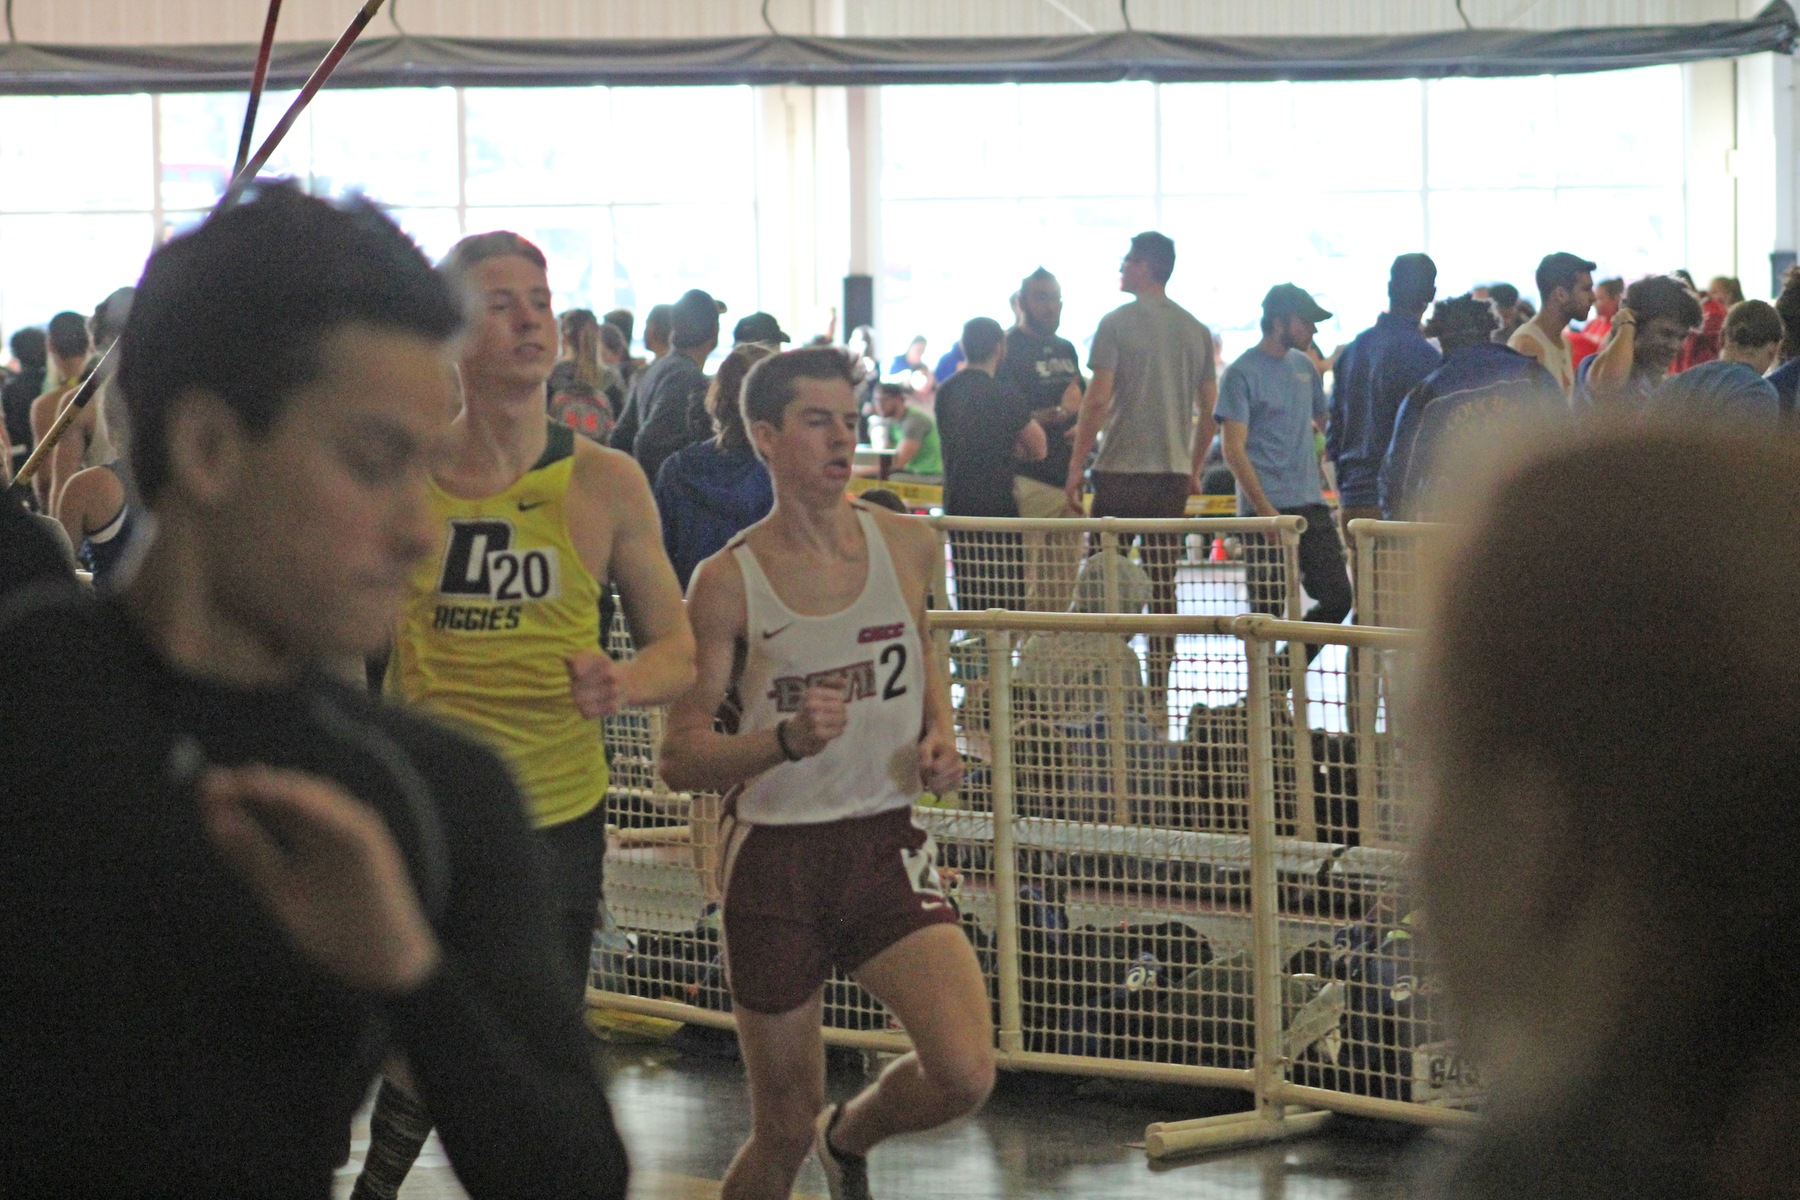 Hallinan Highlights Men's Track and Field's First Meet in Inaugural Season